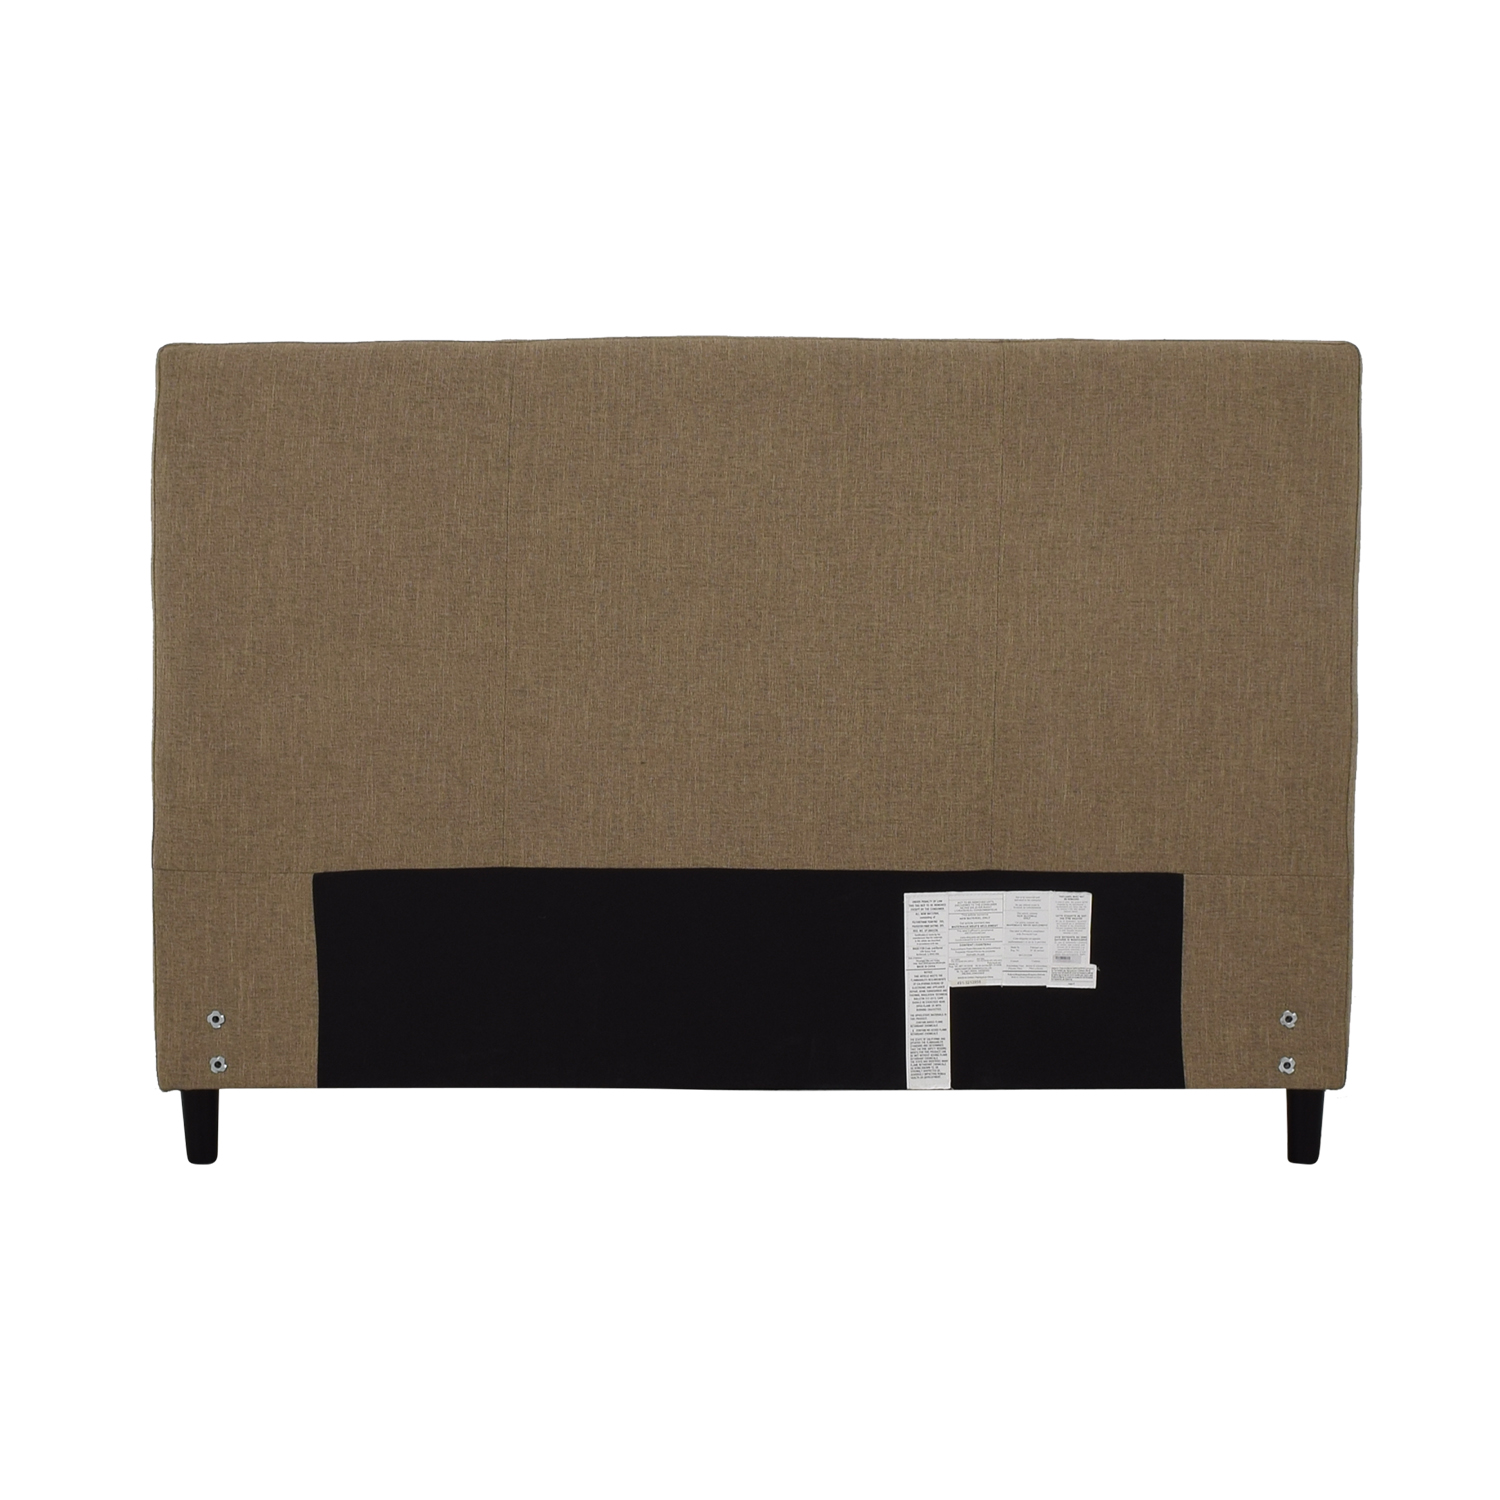 Crate & Barrel Crate & Barrel Lowe Khaki Upholstered Queen Headboard price